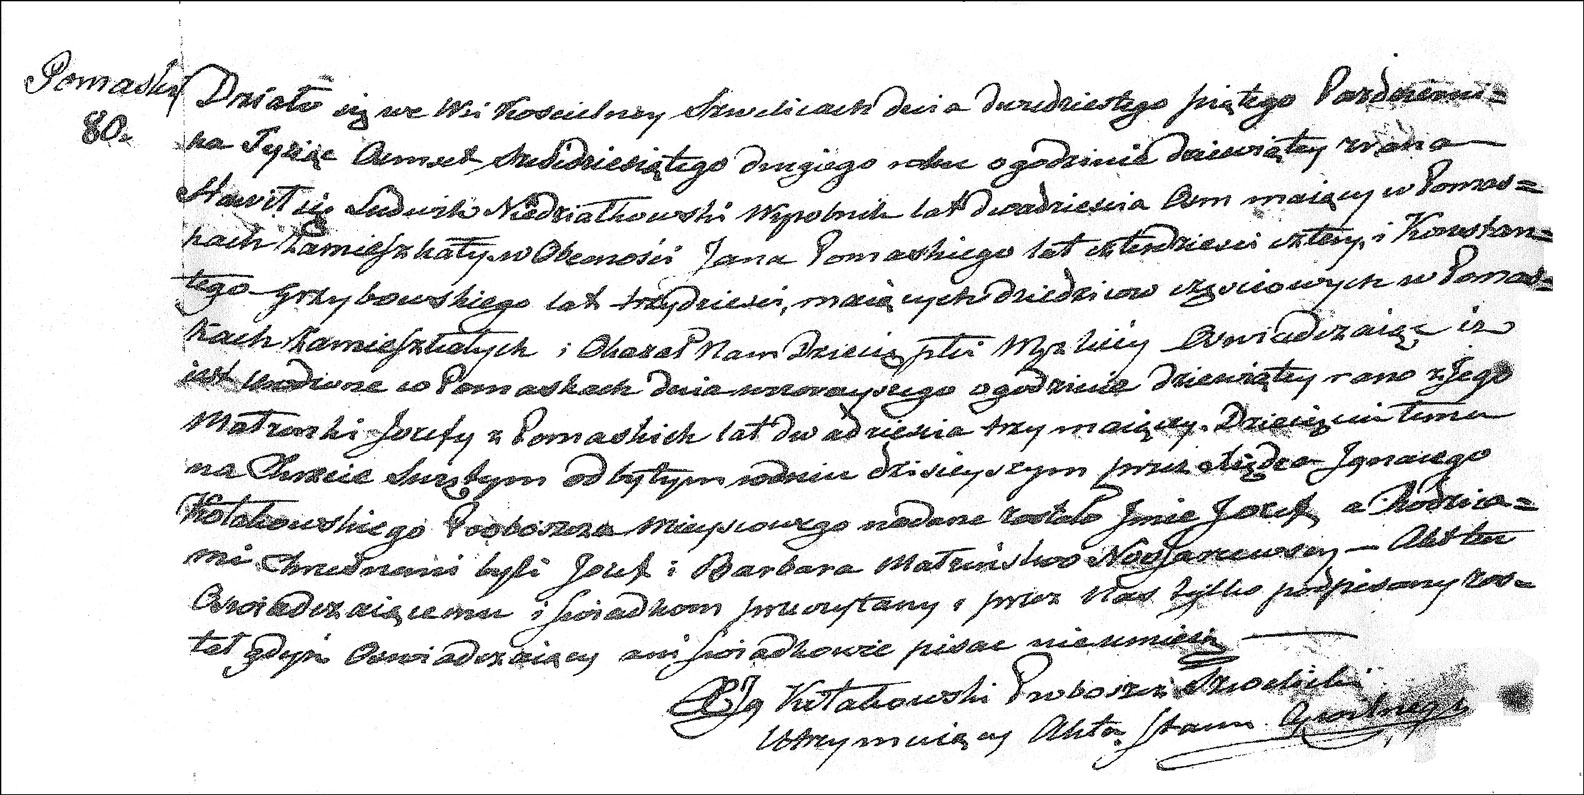 The Birth and Baptismal Record of Jozef Niedzialkowski - 1862